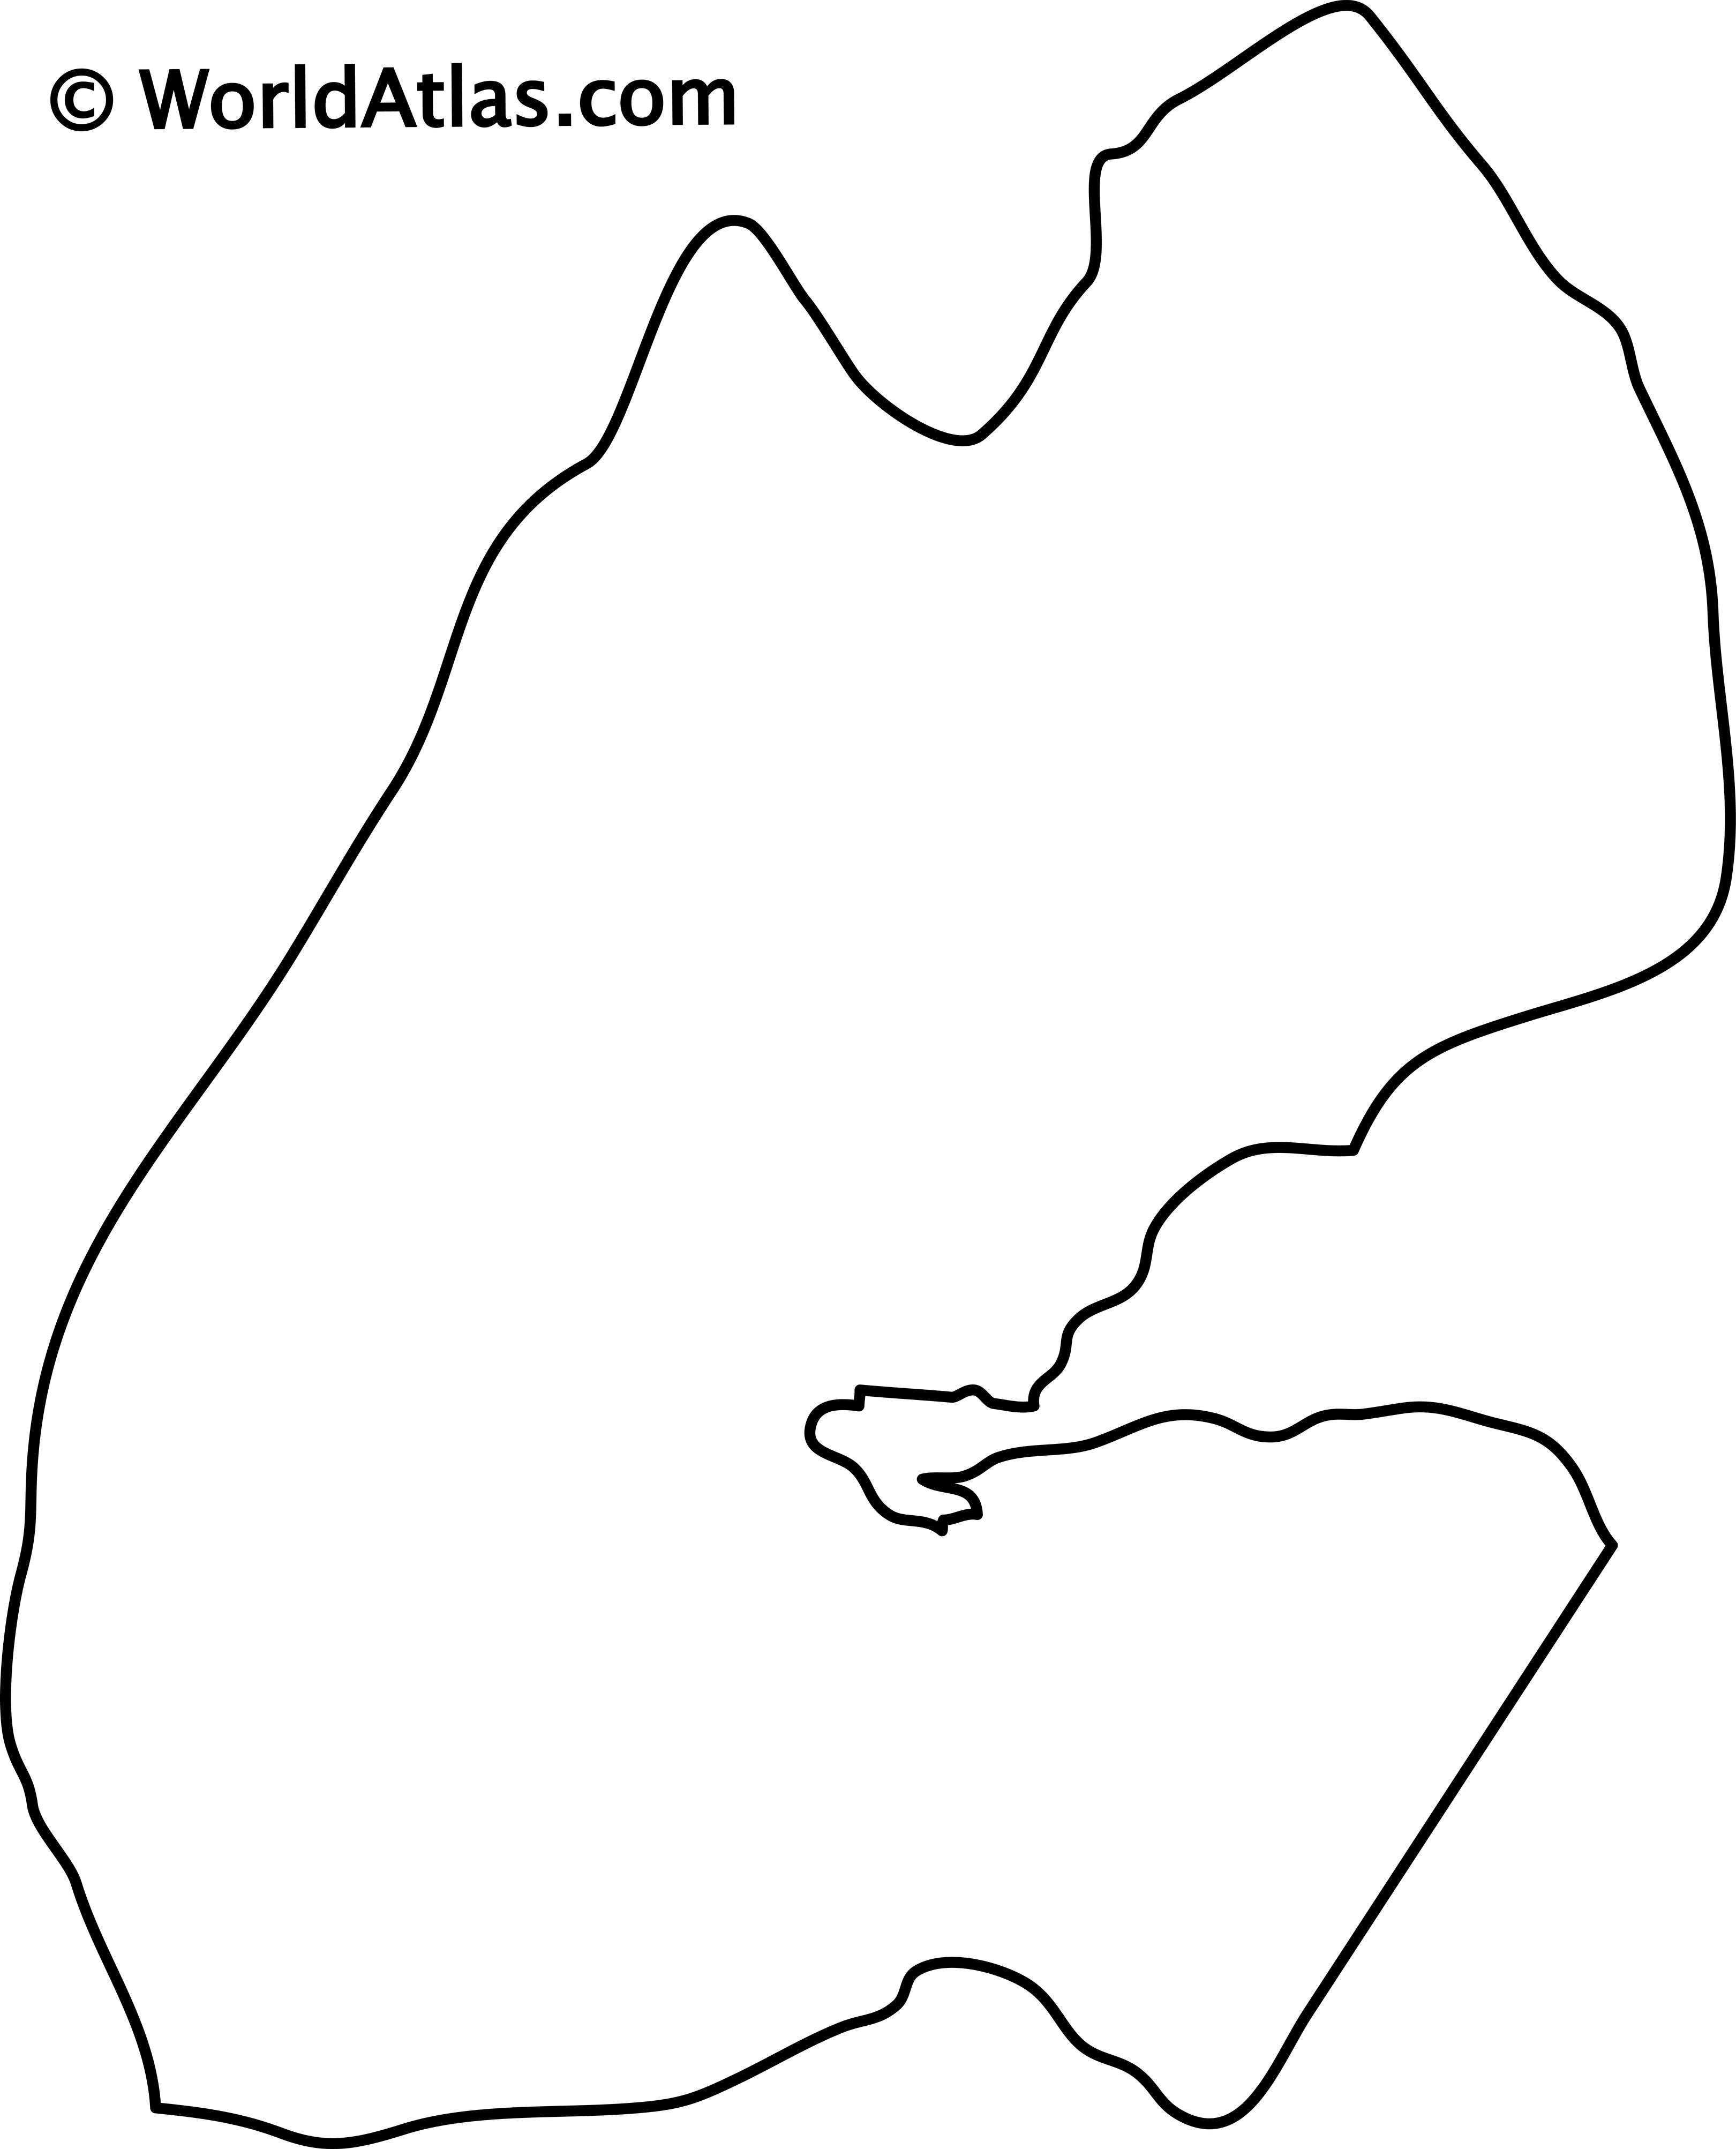 Blank Outline Map of Djibouti